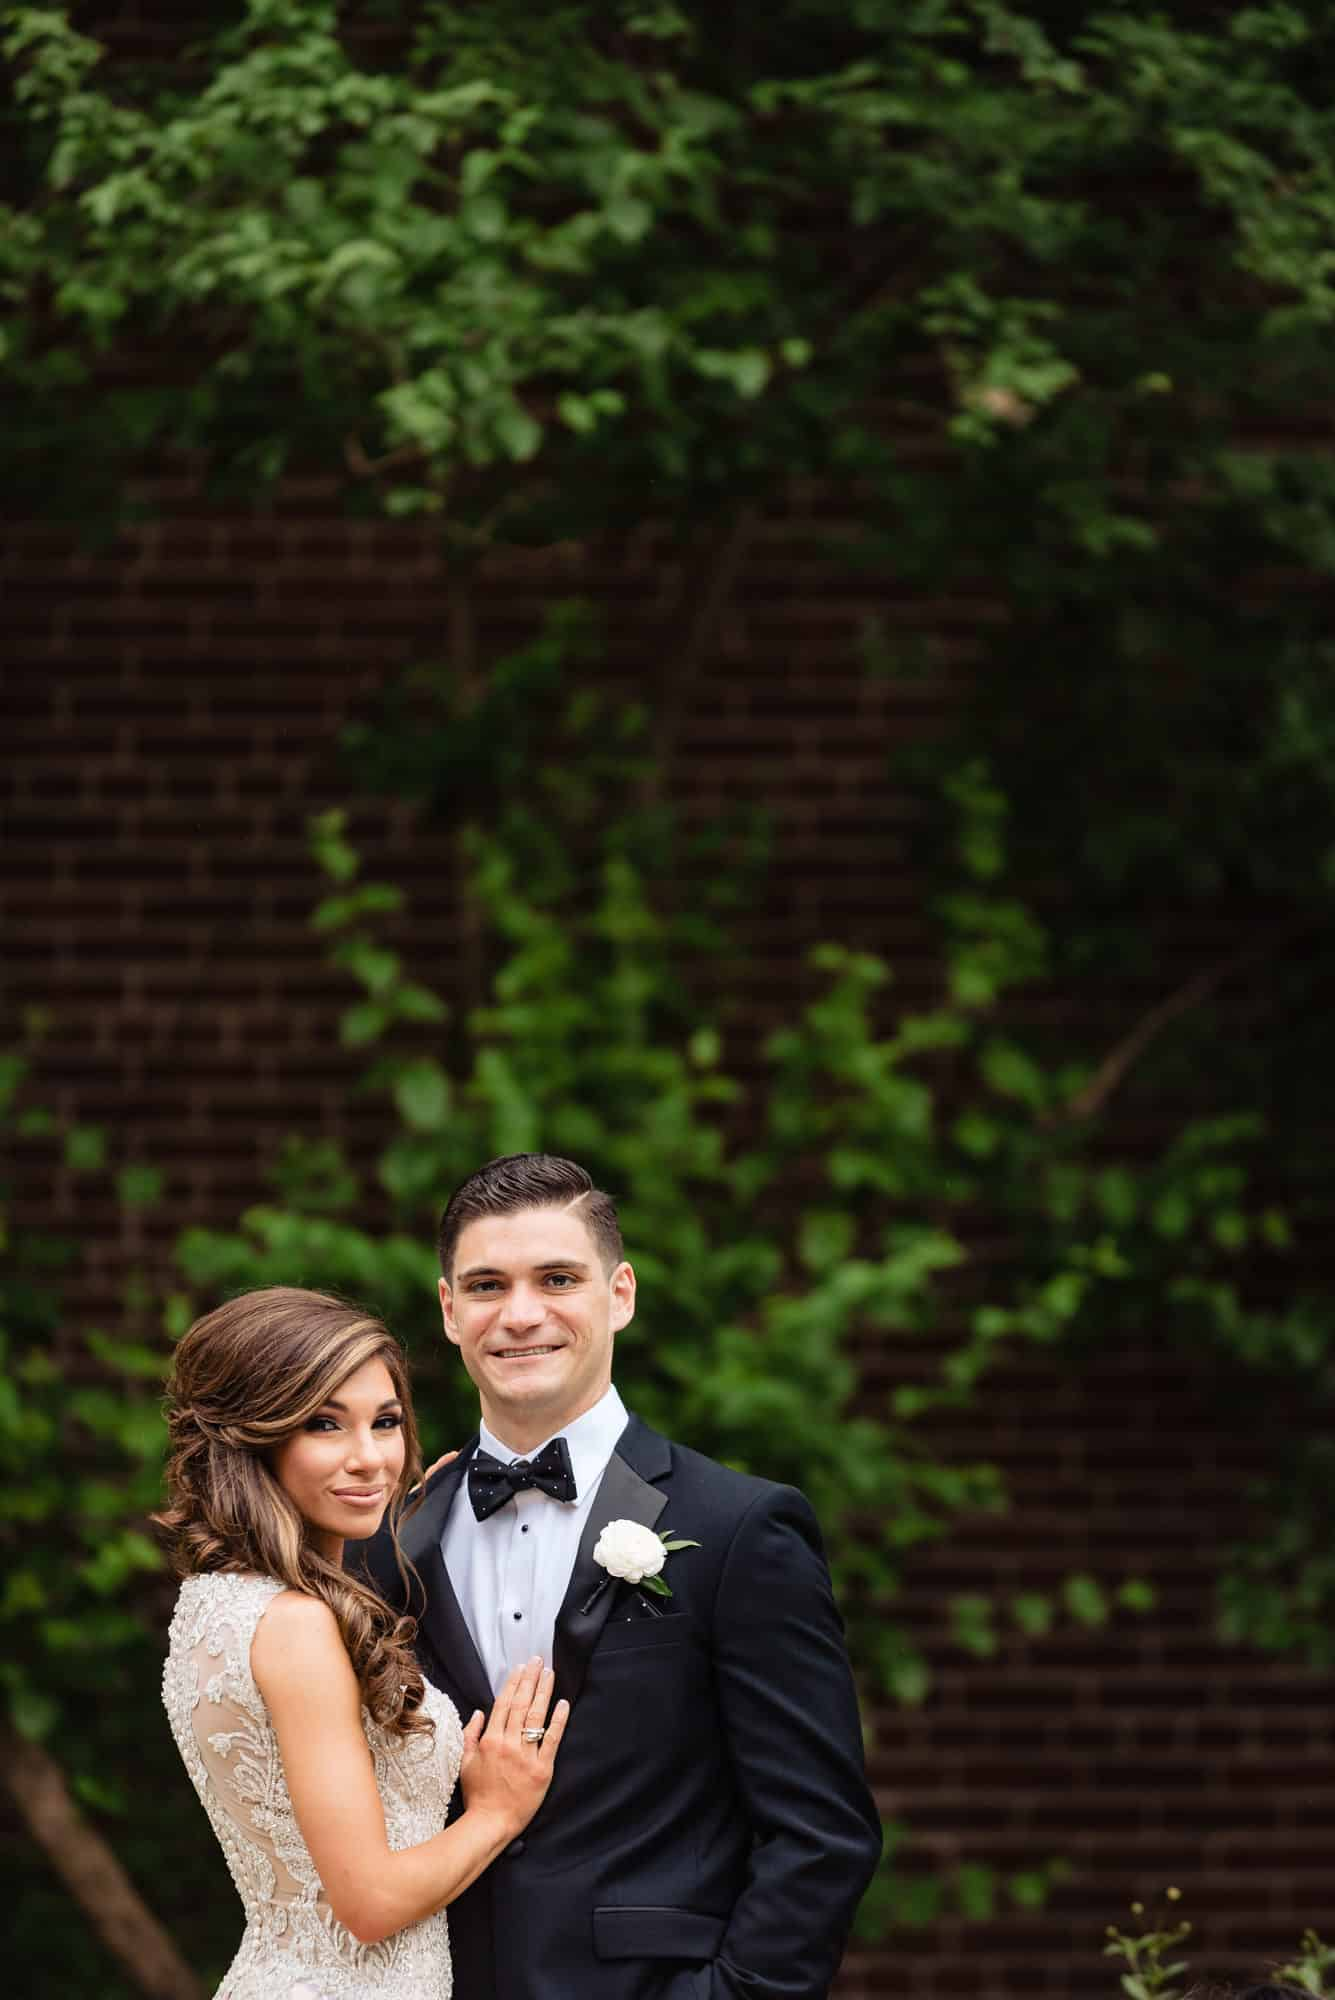 Gabriella+Nick-Tendenza Wedding-21